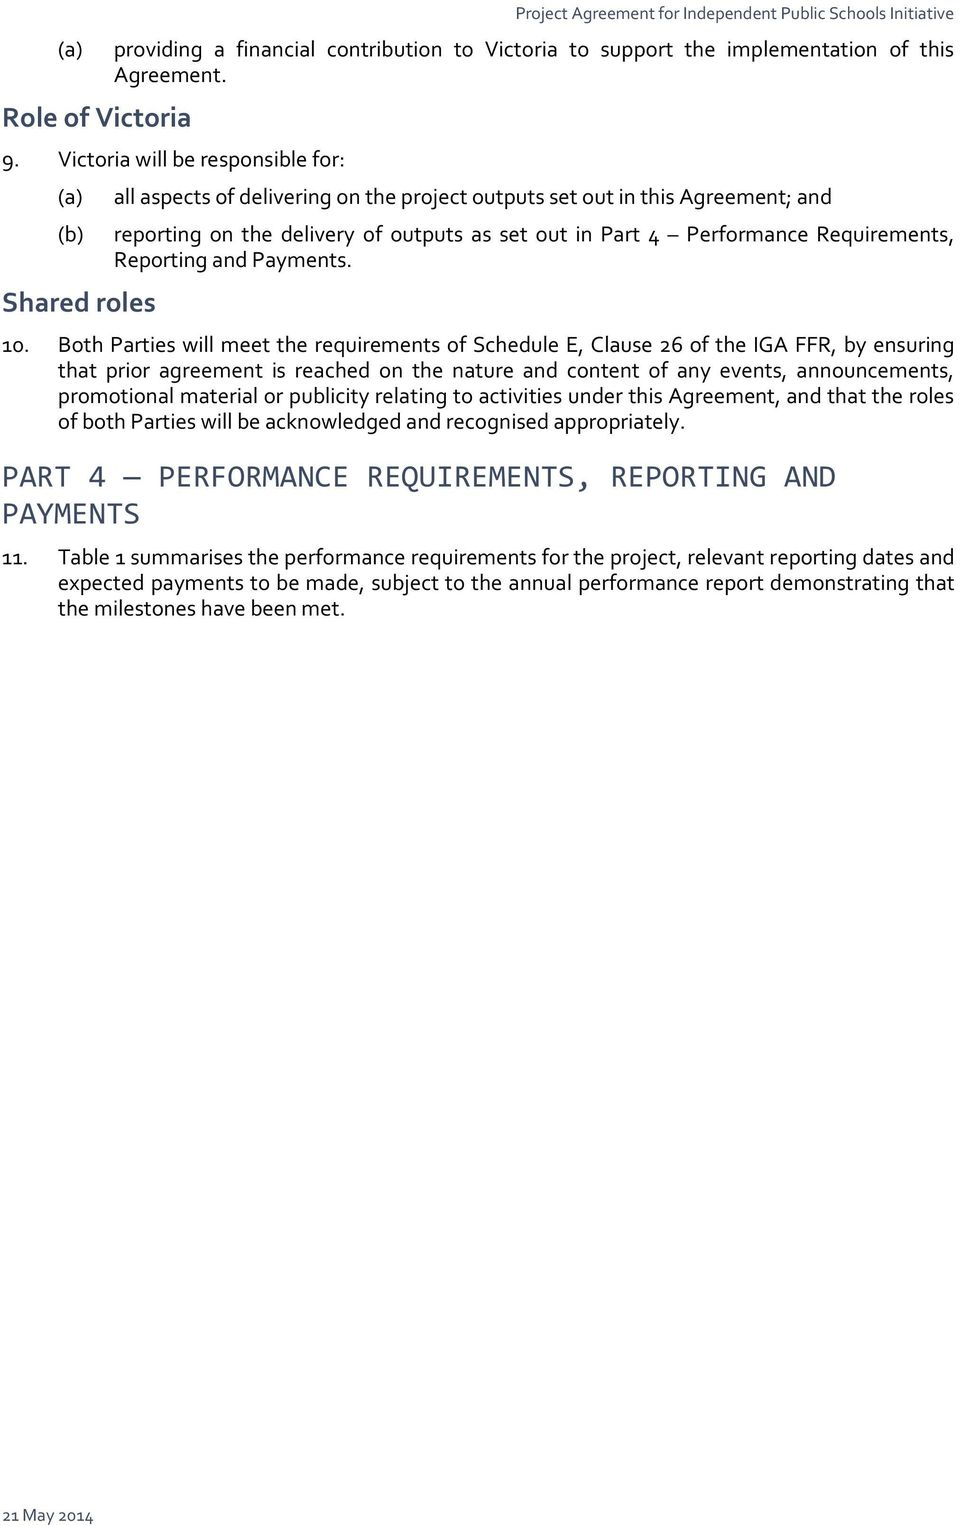 Performance Requirements, Reporting and Payments. 10.